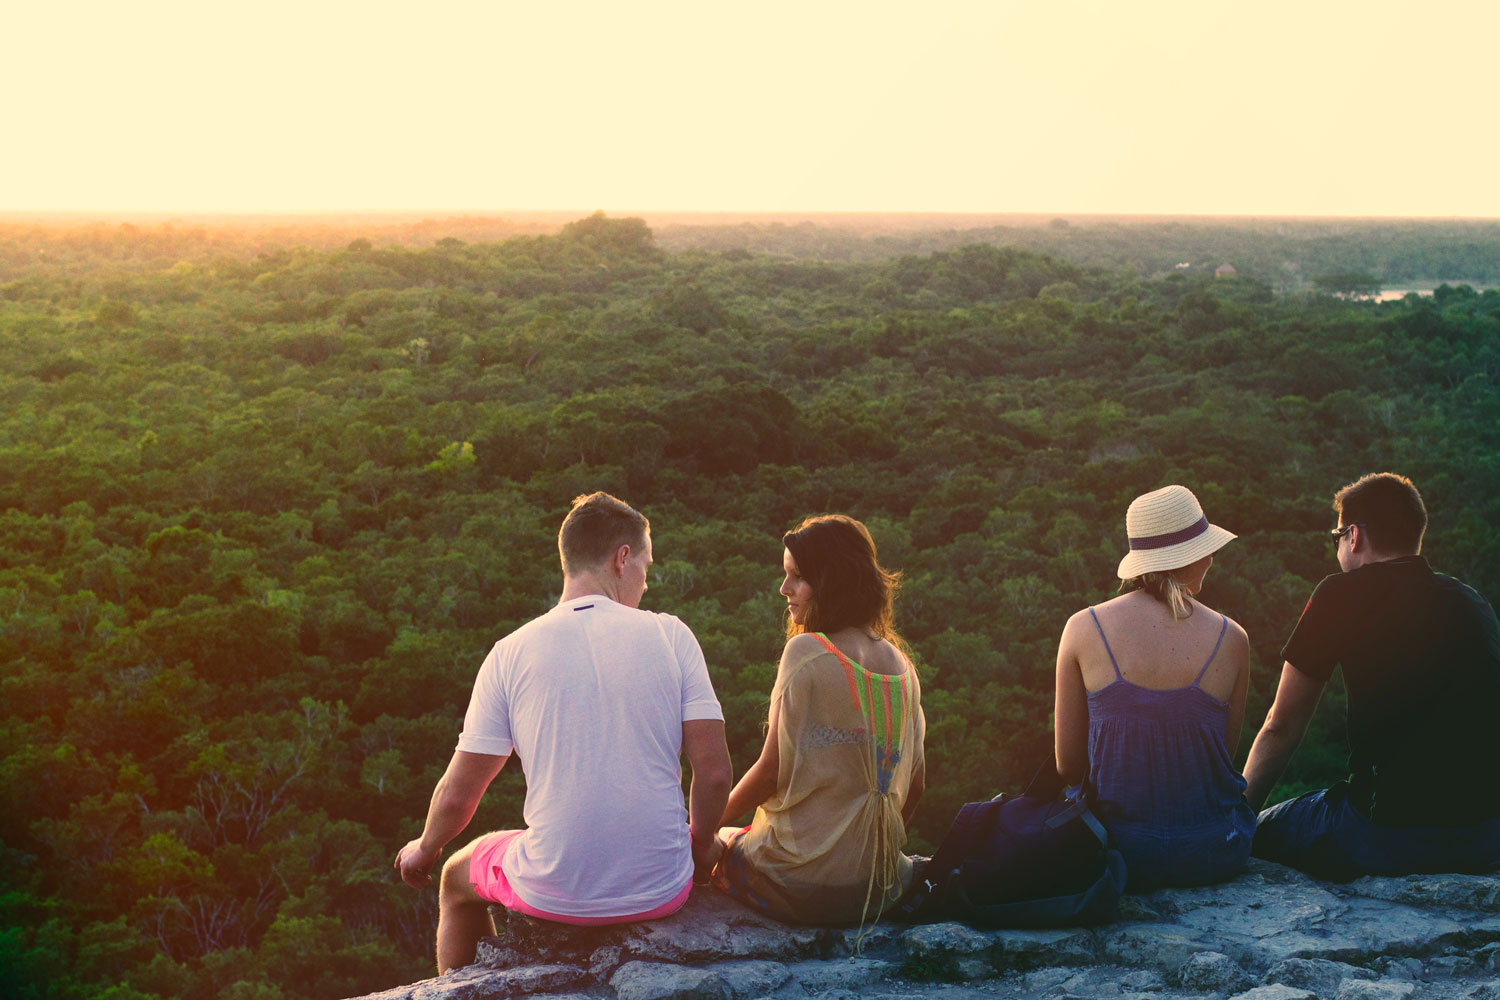 Maya_Luxe_Luxury_Villa_Rentals_Experiences_Magazine_The_Queens_of_Coba_Atop_The_Tallest_Temple_4.jpg